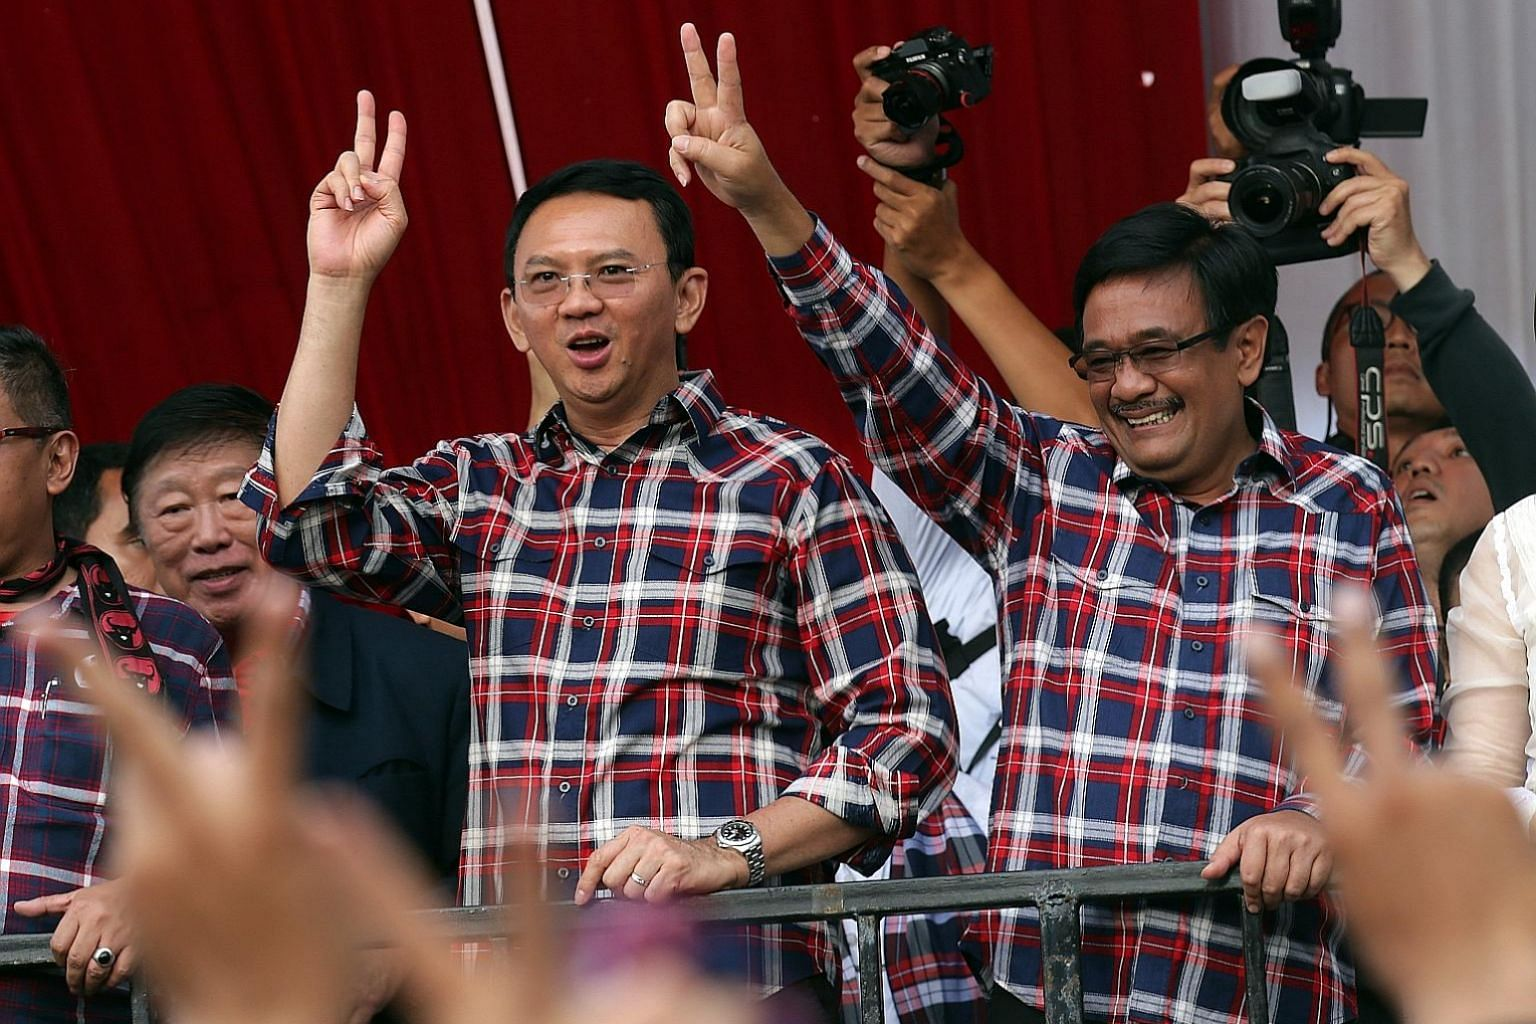 Mr Agus (far left), son of former president Yudhoyono, might be seen as a political novice by some, so choosing Ms Sylviana, a City Hall veteran, as his running mate might have been a move by the Democratic Party to counterbalance that perception. Mr